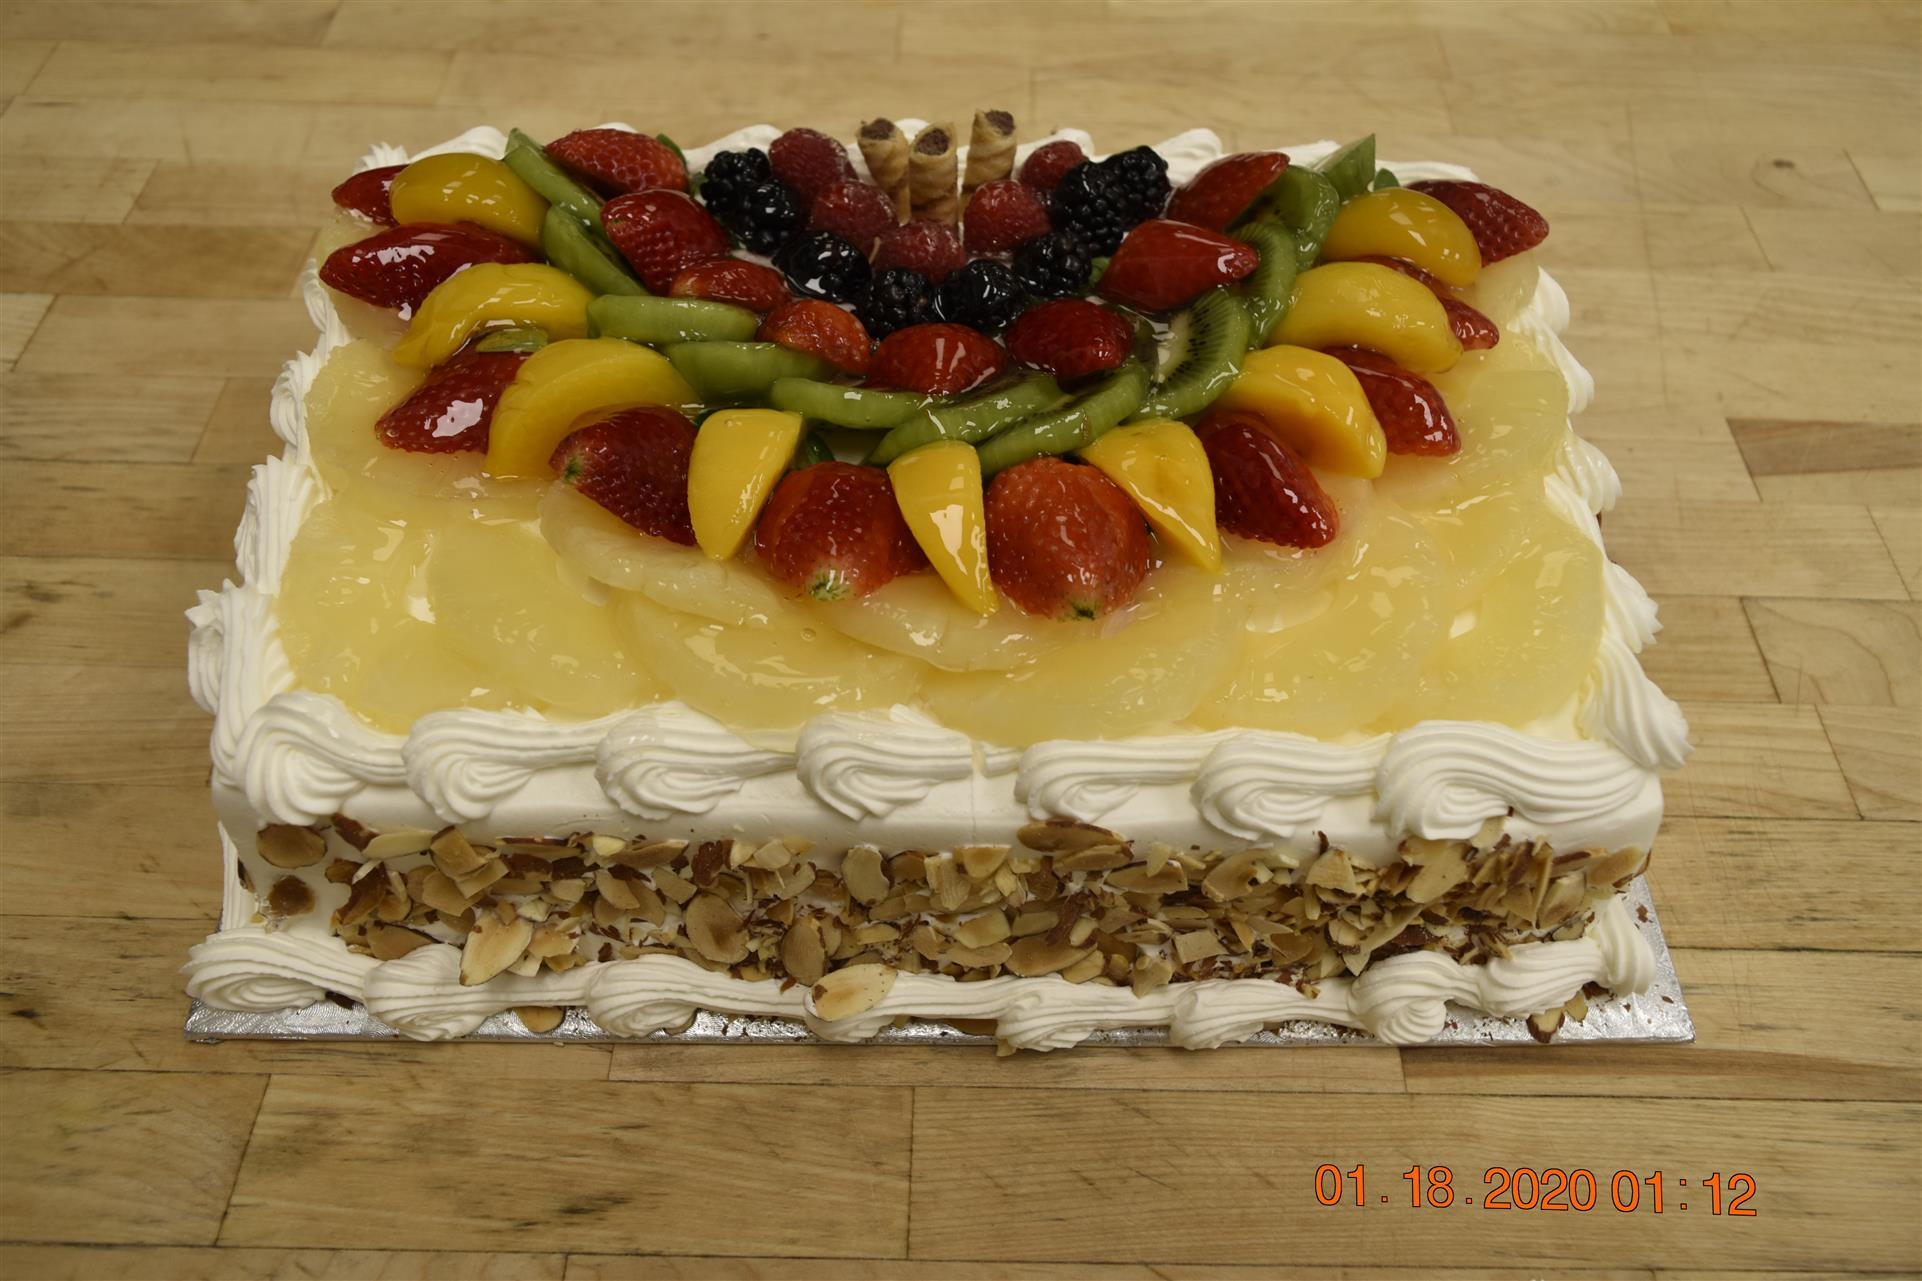 rectangular vanilla cake with nuts and various fruits